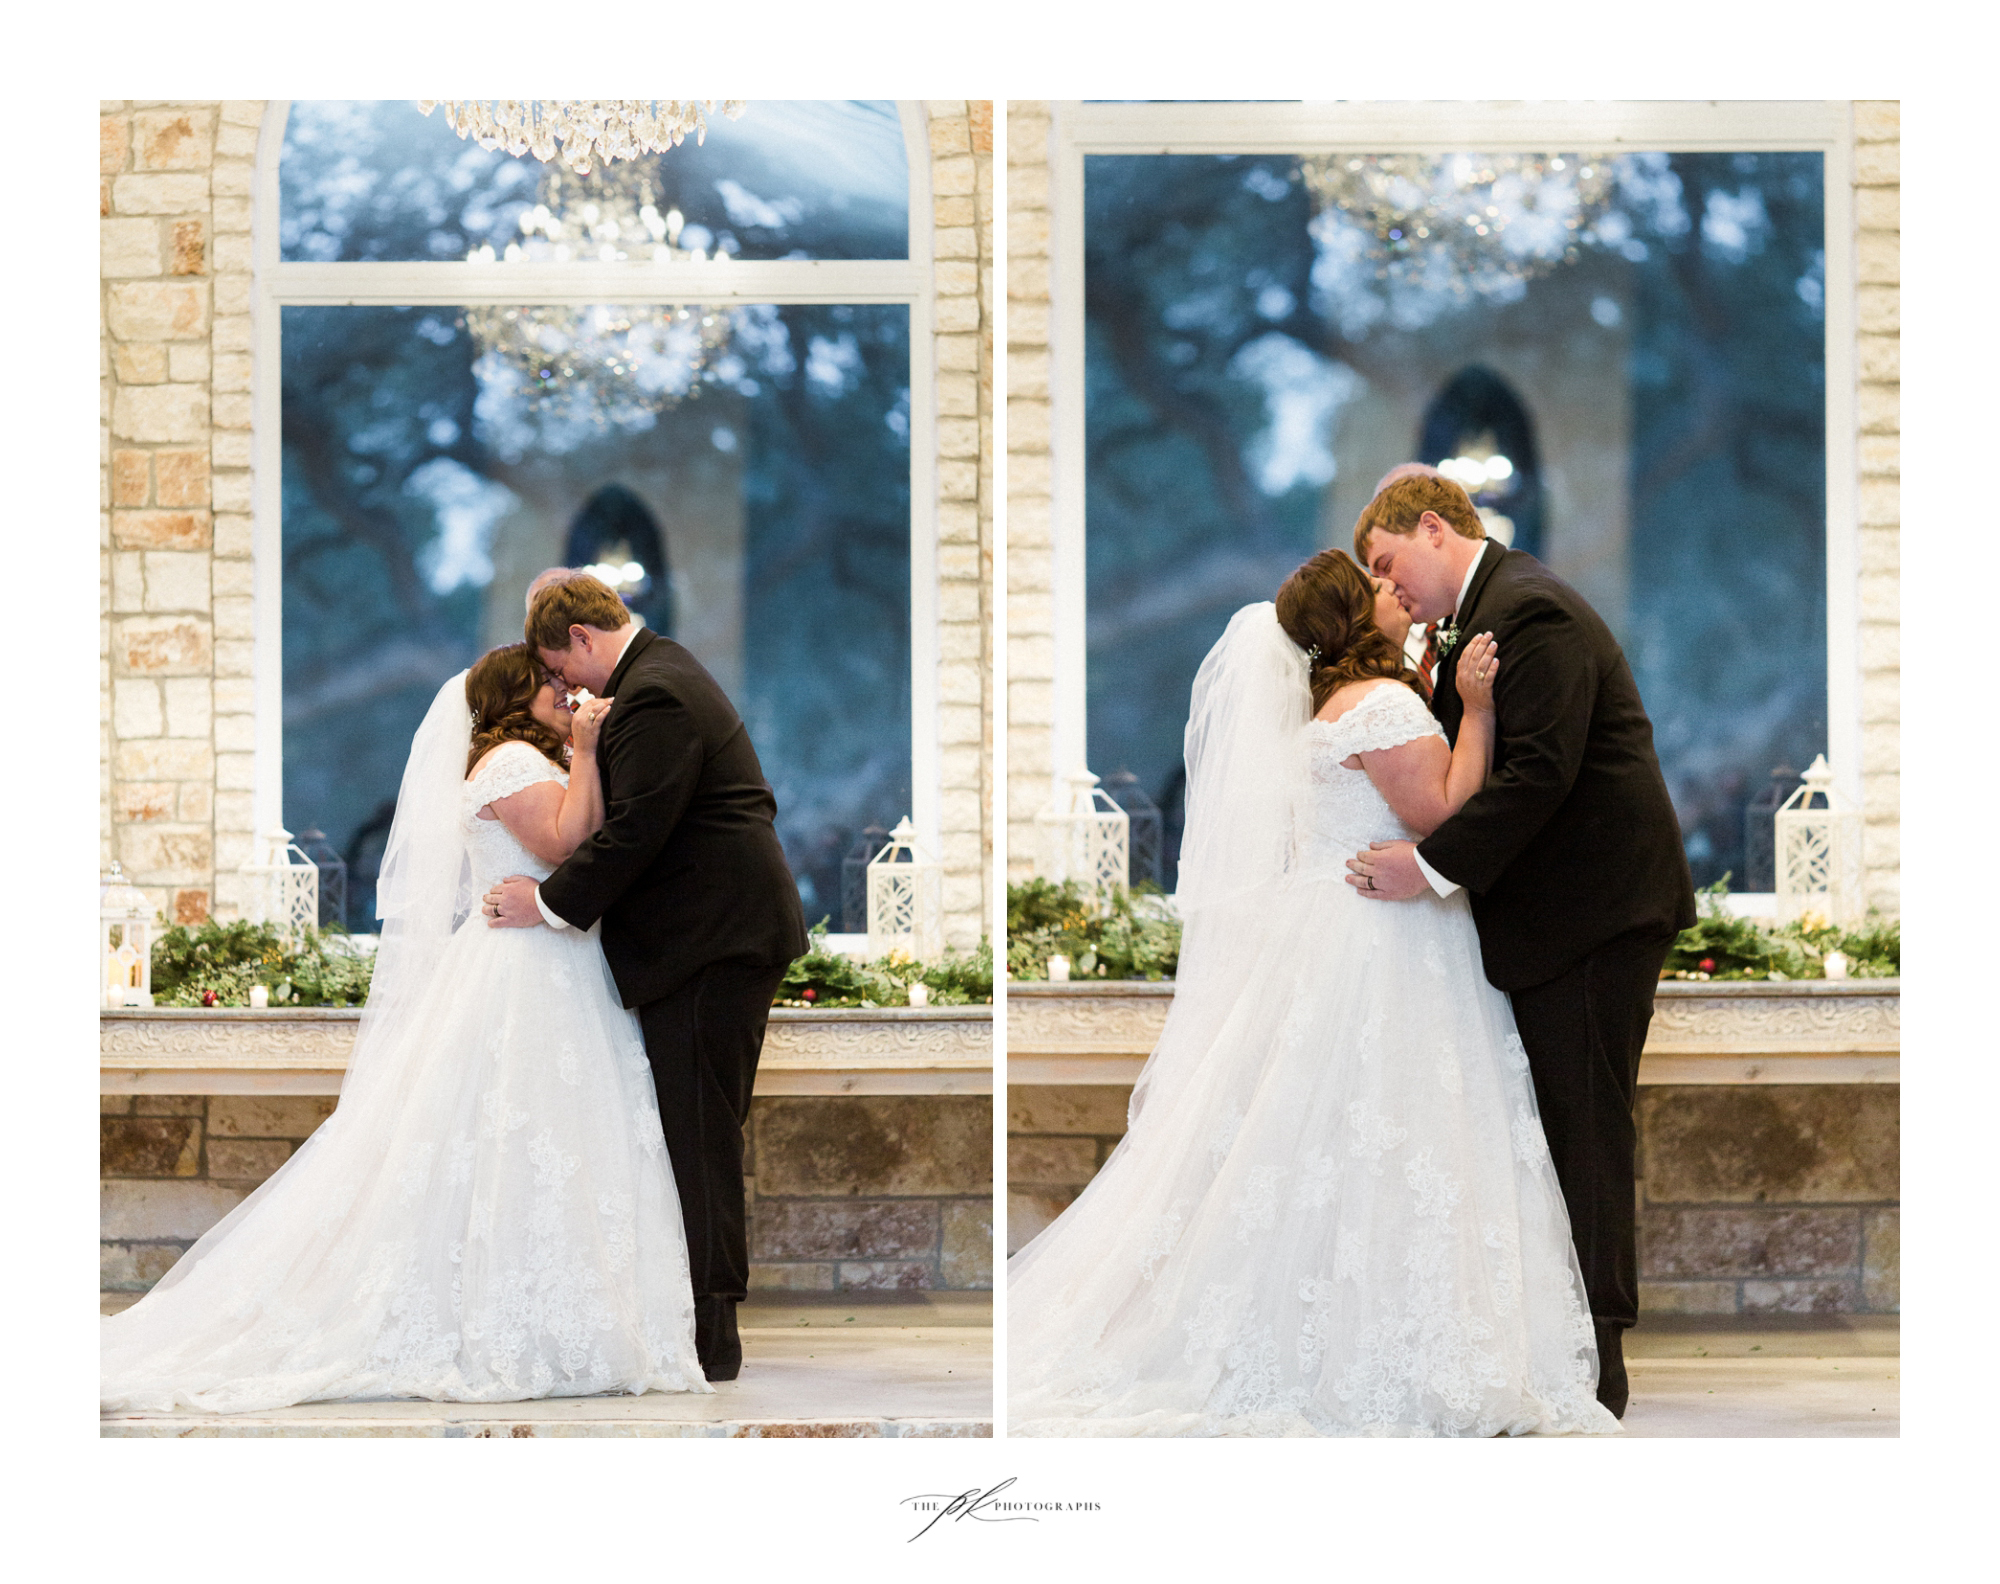 Emily and Lamar's first kiss as husband and wife during their wedding ceremony in the open air chapel at the Chandelier of Gruene